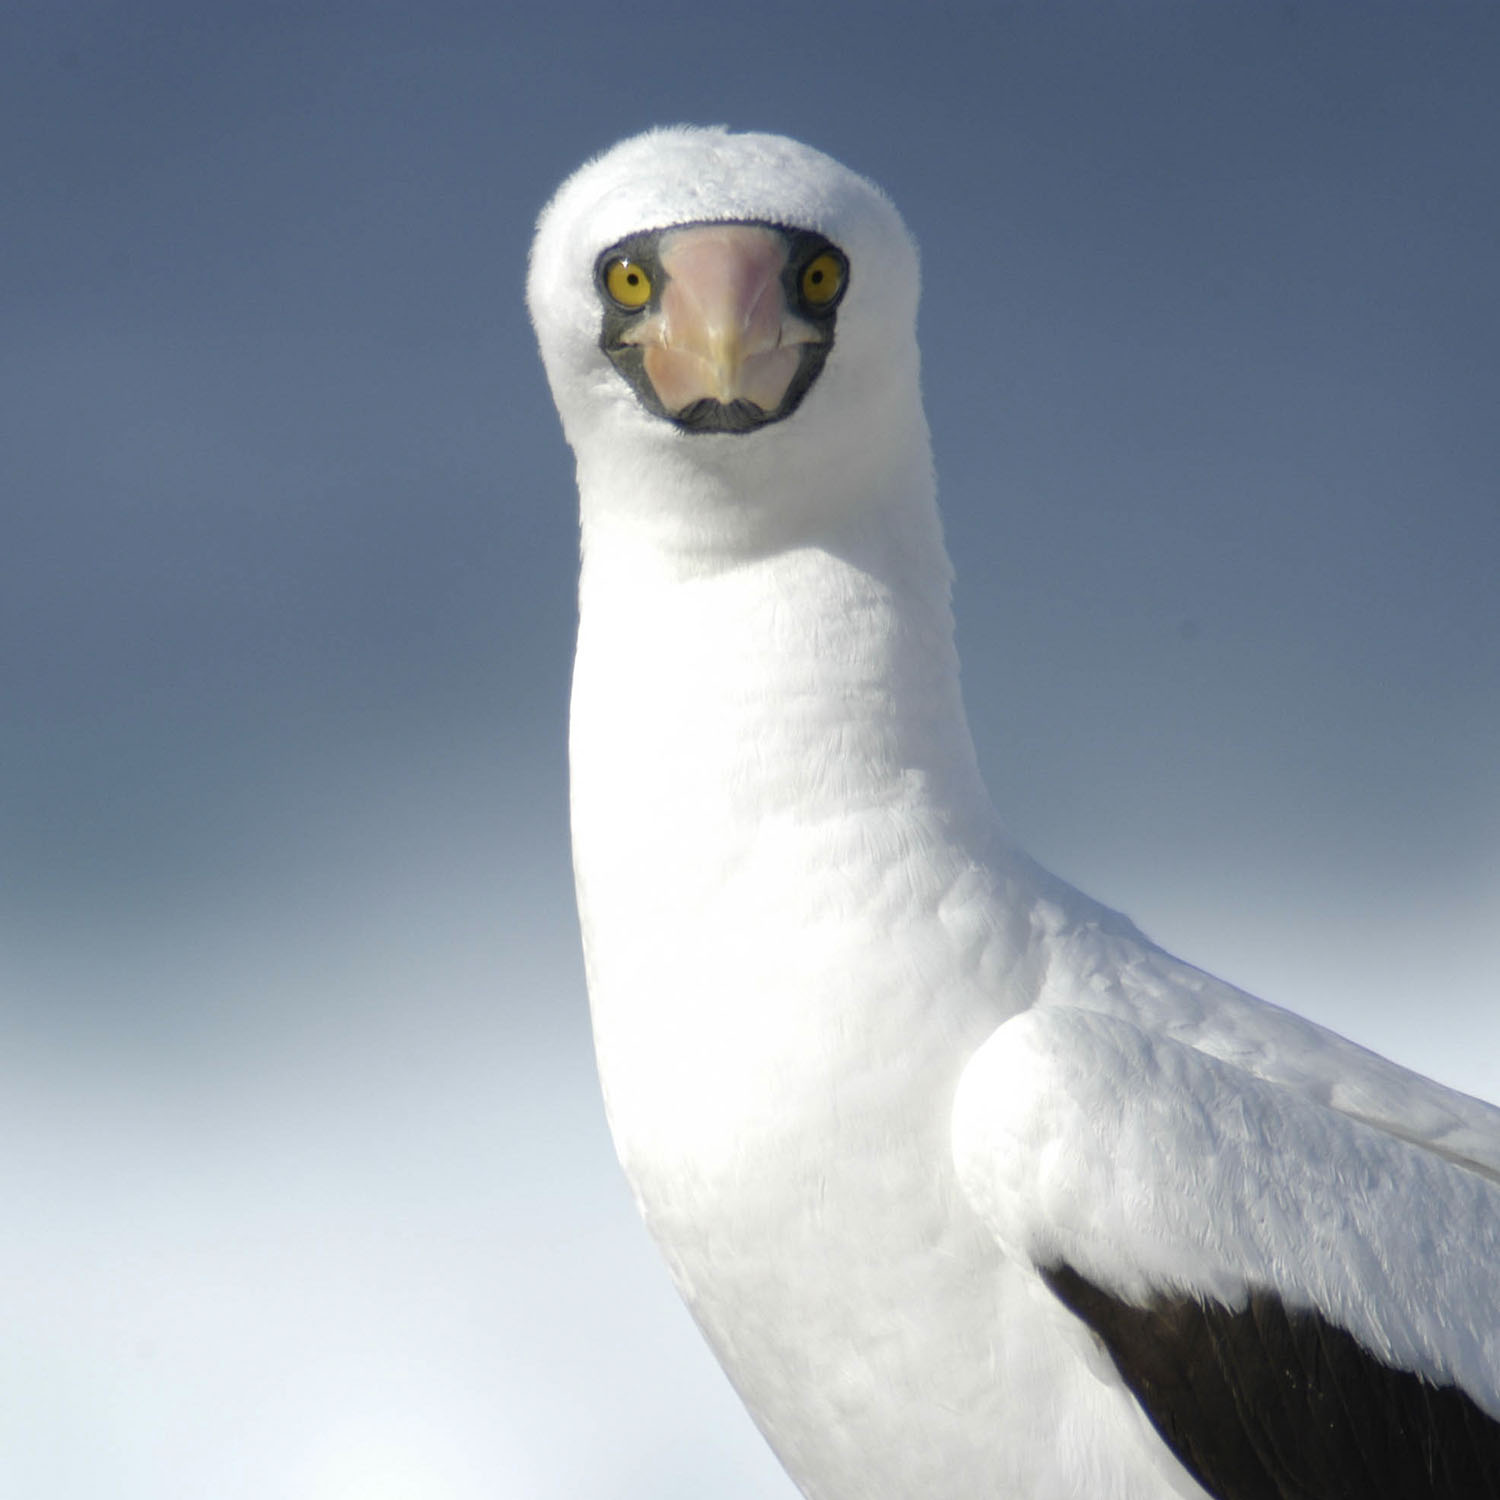 1500_0001_Masked Booby 1